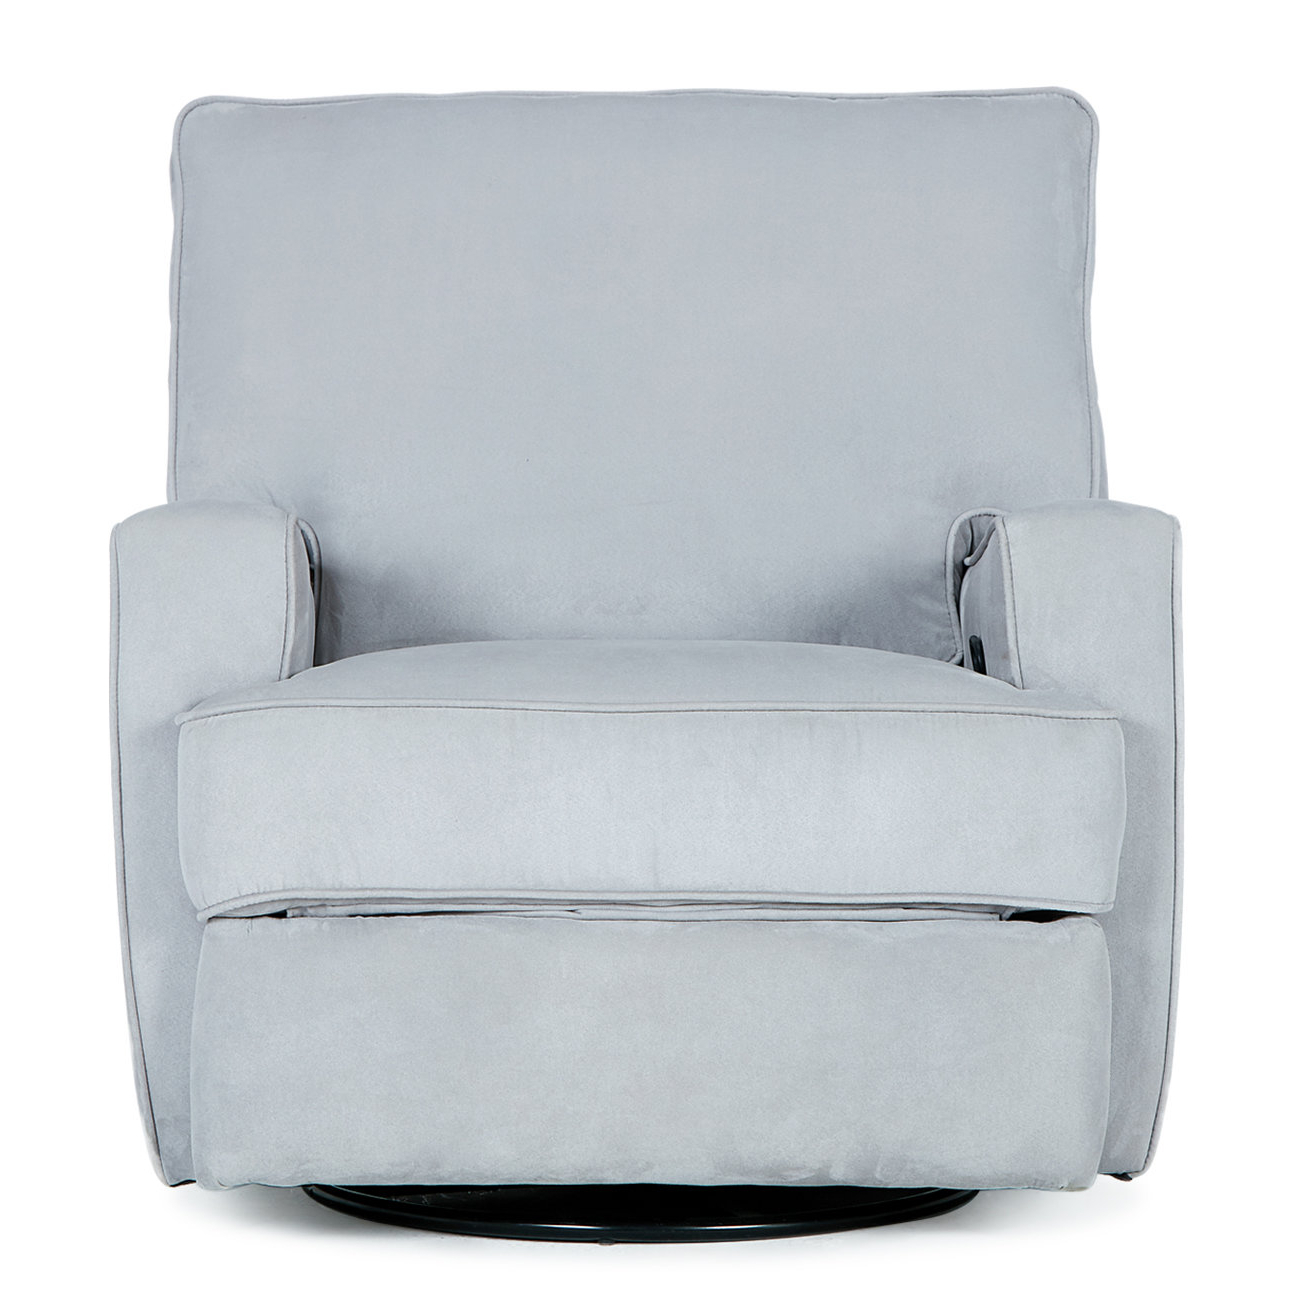 Darby Home Co Finck Manual Swivel Recliner (View 3 of 20)